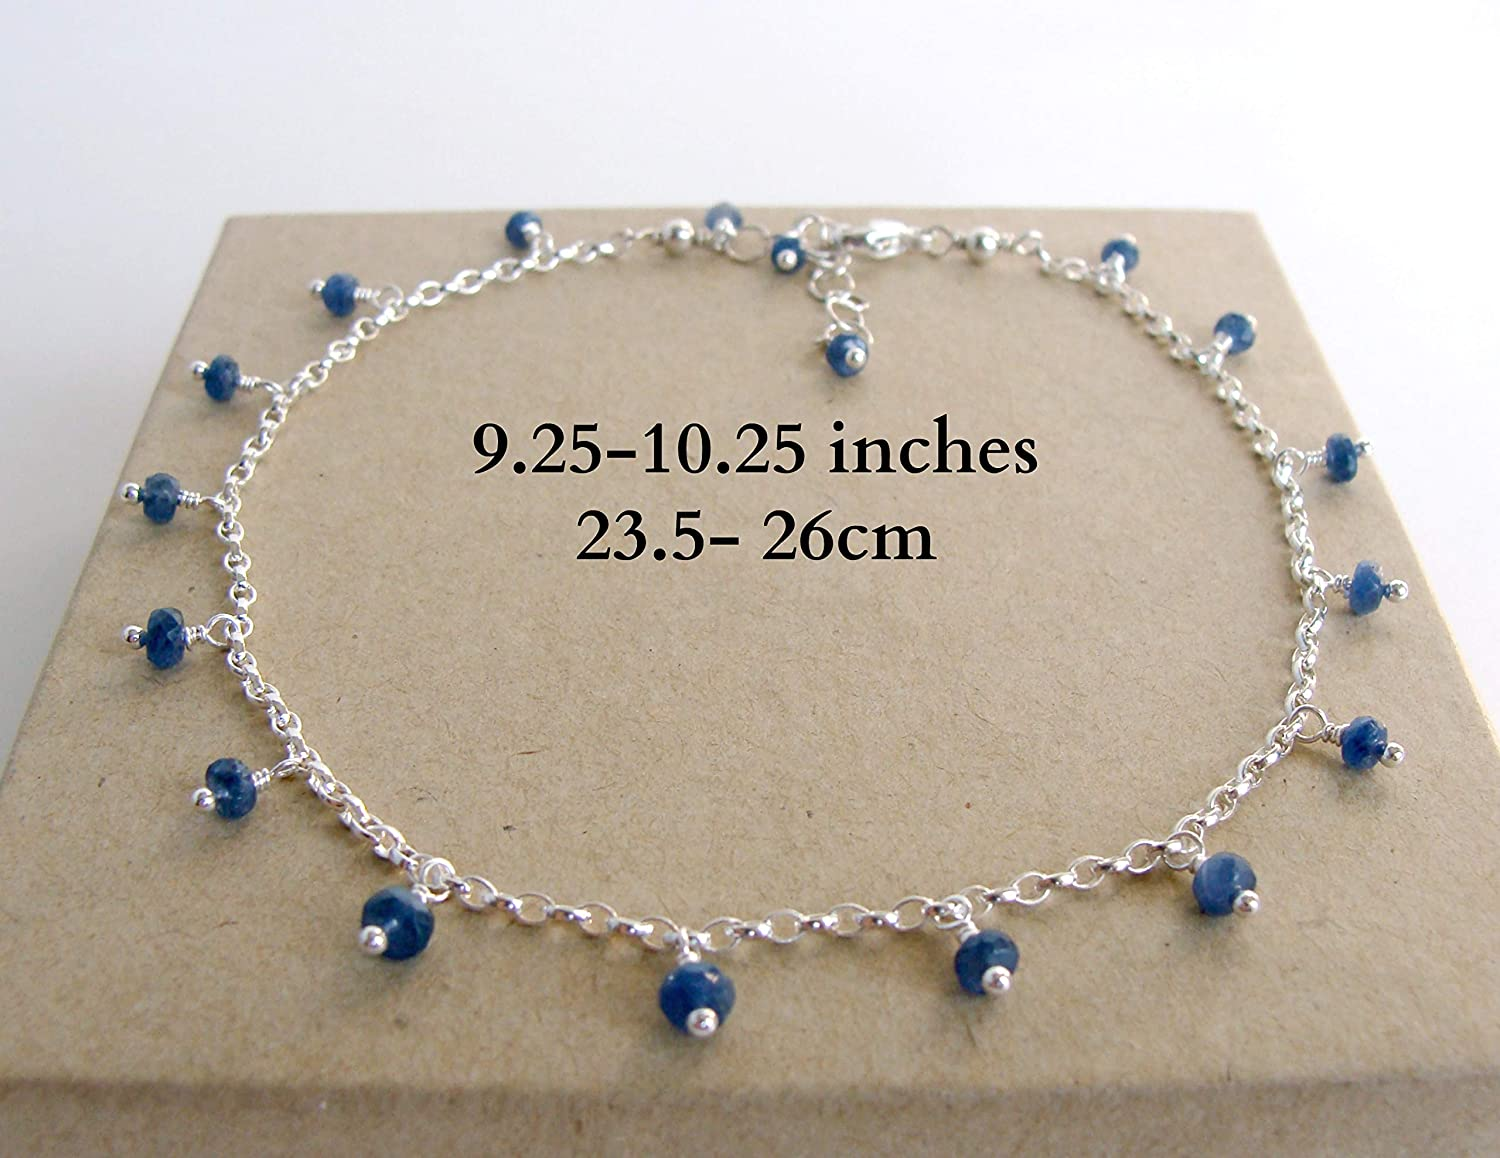 Genuine sapphire anklet blue sapphire drops on a sterling silver chain adjustable 9.25-10.25inches handmade Let Loose Jewelry